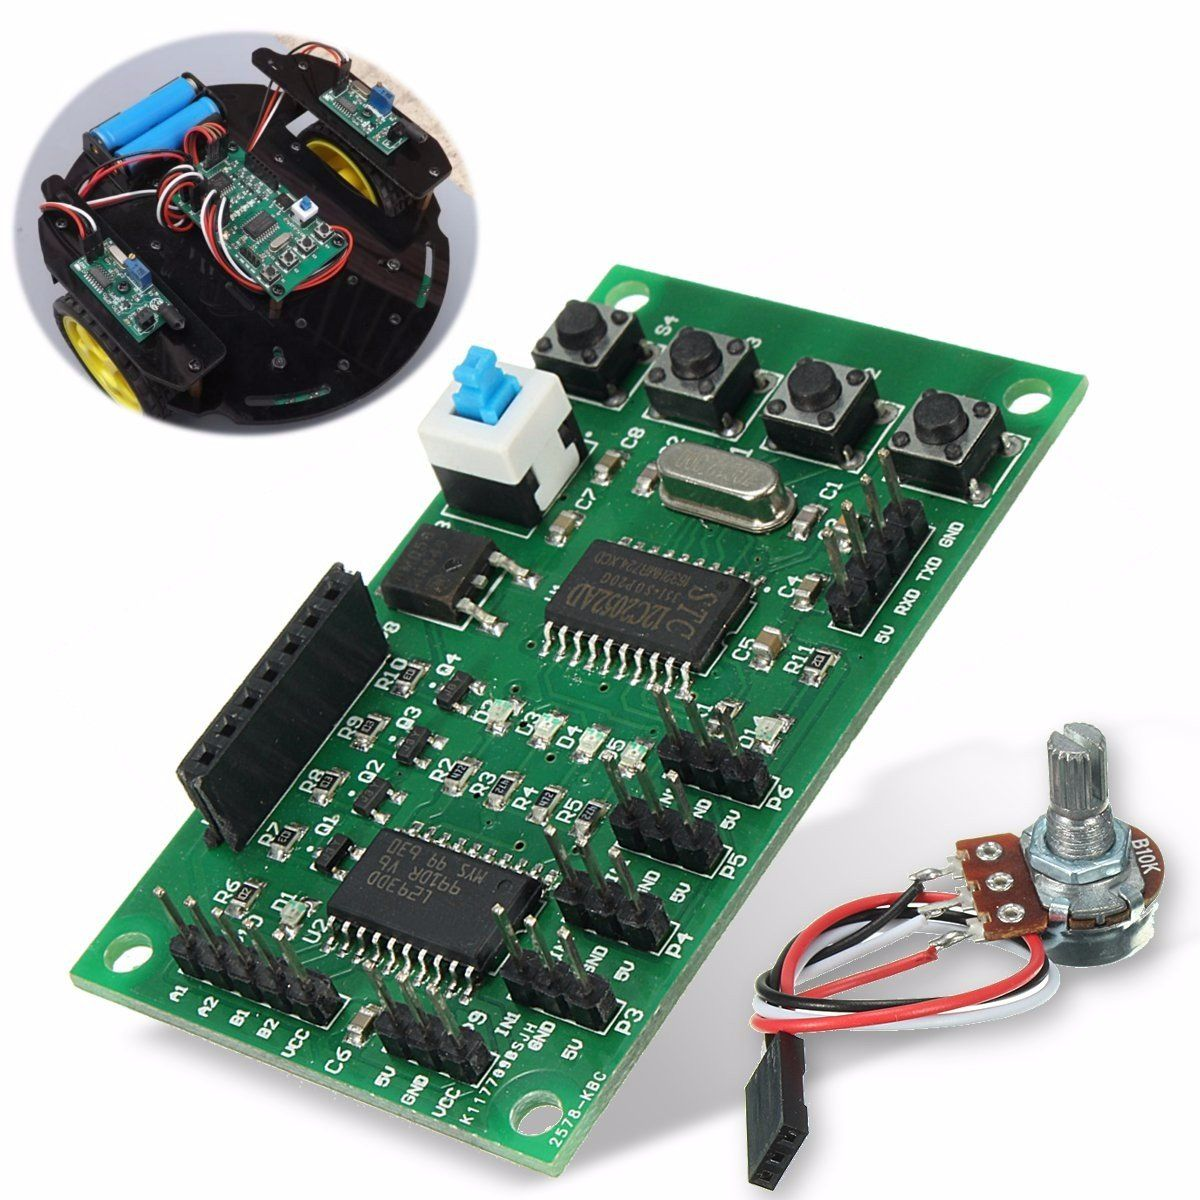 [US$6.09] Programmable 2/4 Phase 4/5 Wire Stepper Motor Driver Control Board For Robot Car DIY #programmable #phase #wire #stepper #motor #driver #control ...